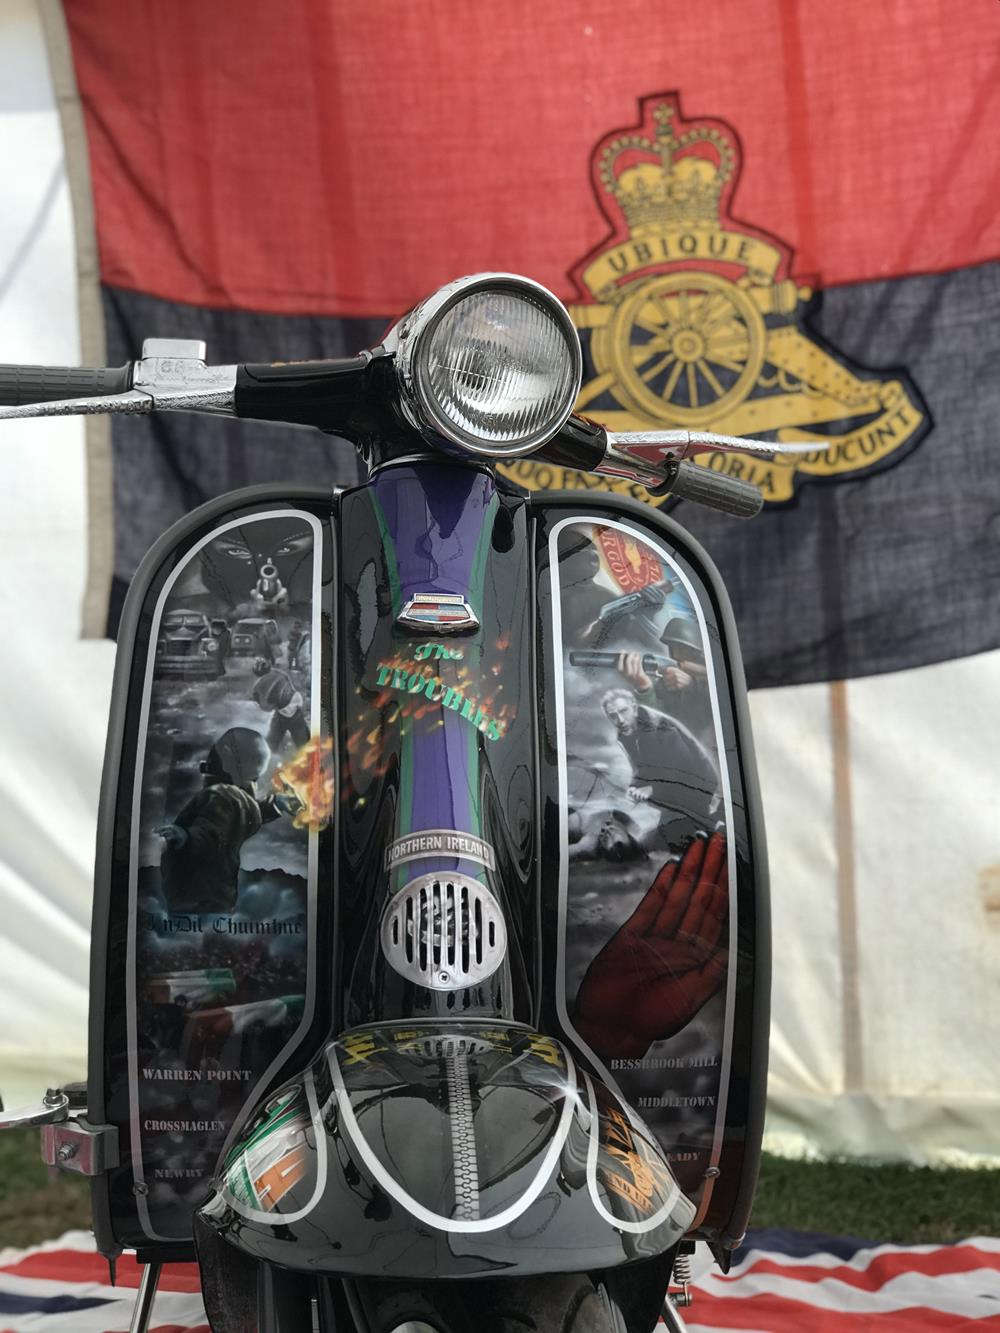 Custom Lambretta The Troubles with regimental flag in the background